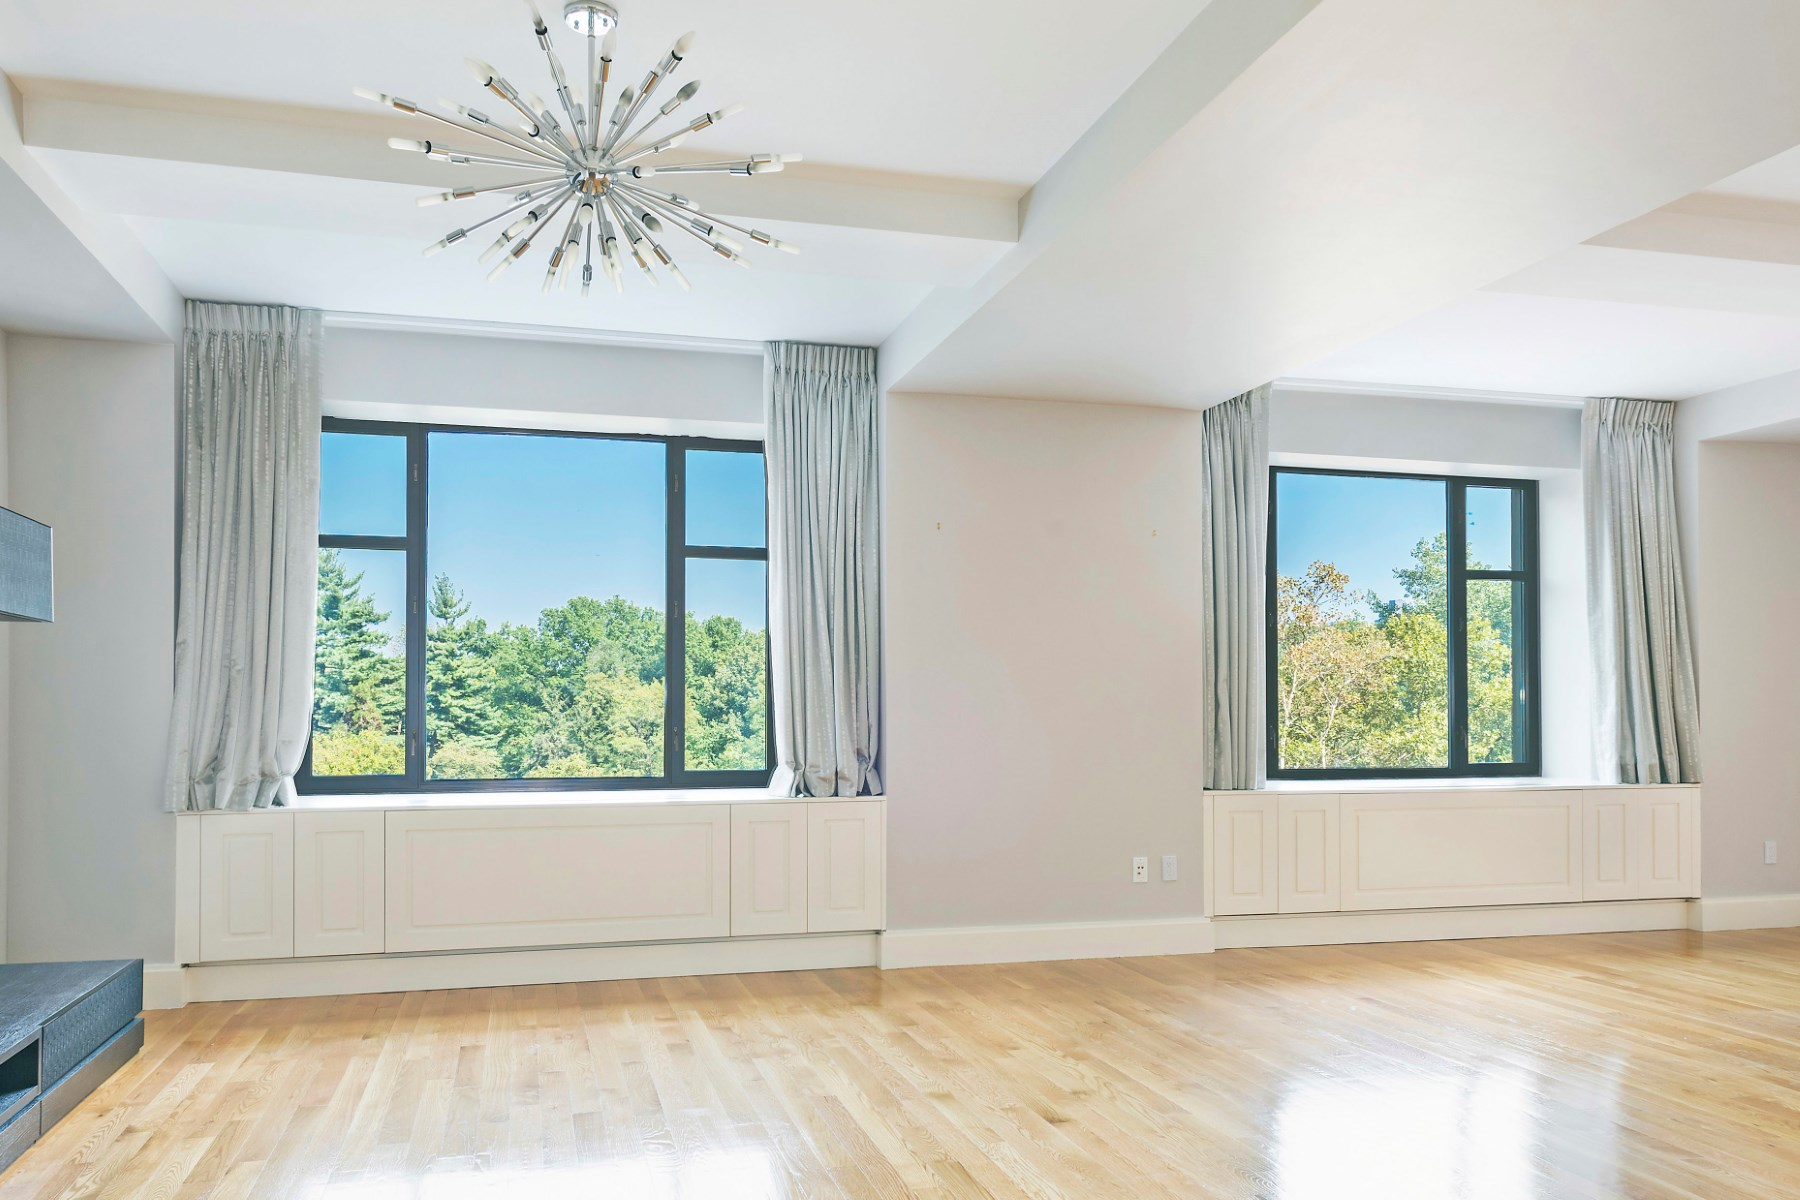 Property For Sale at 110 Central Park South, Apt 5B